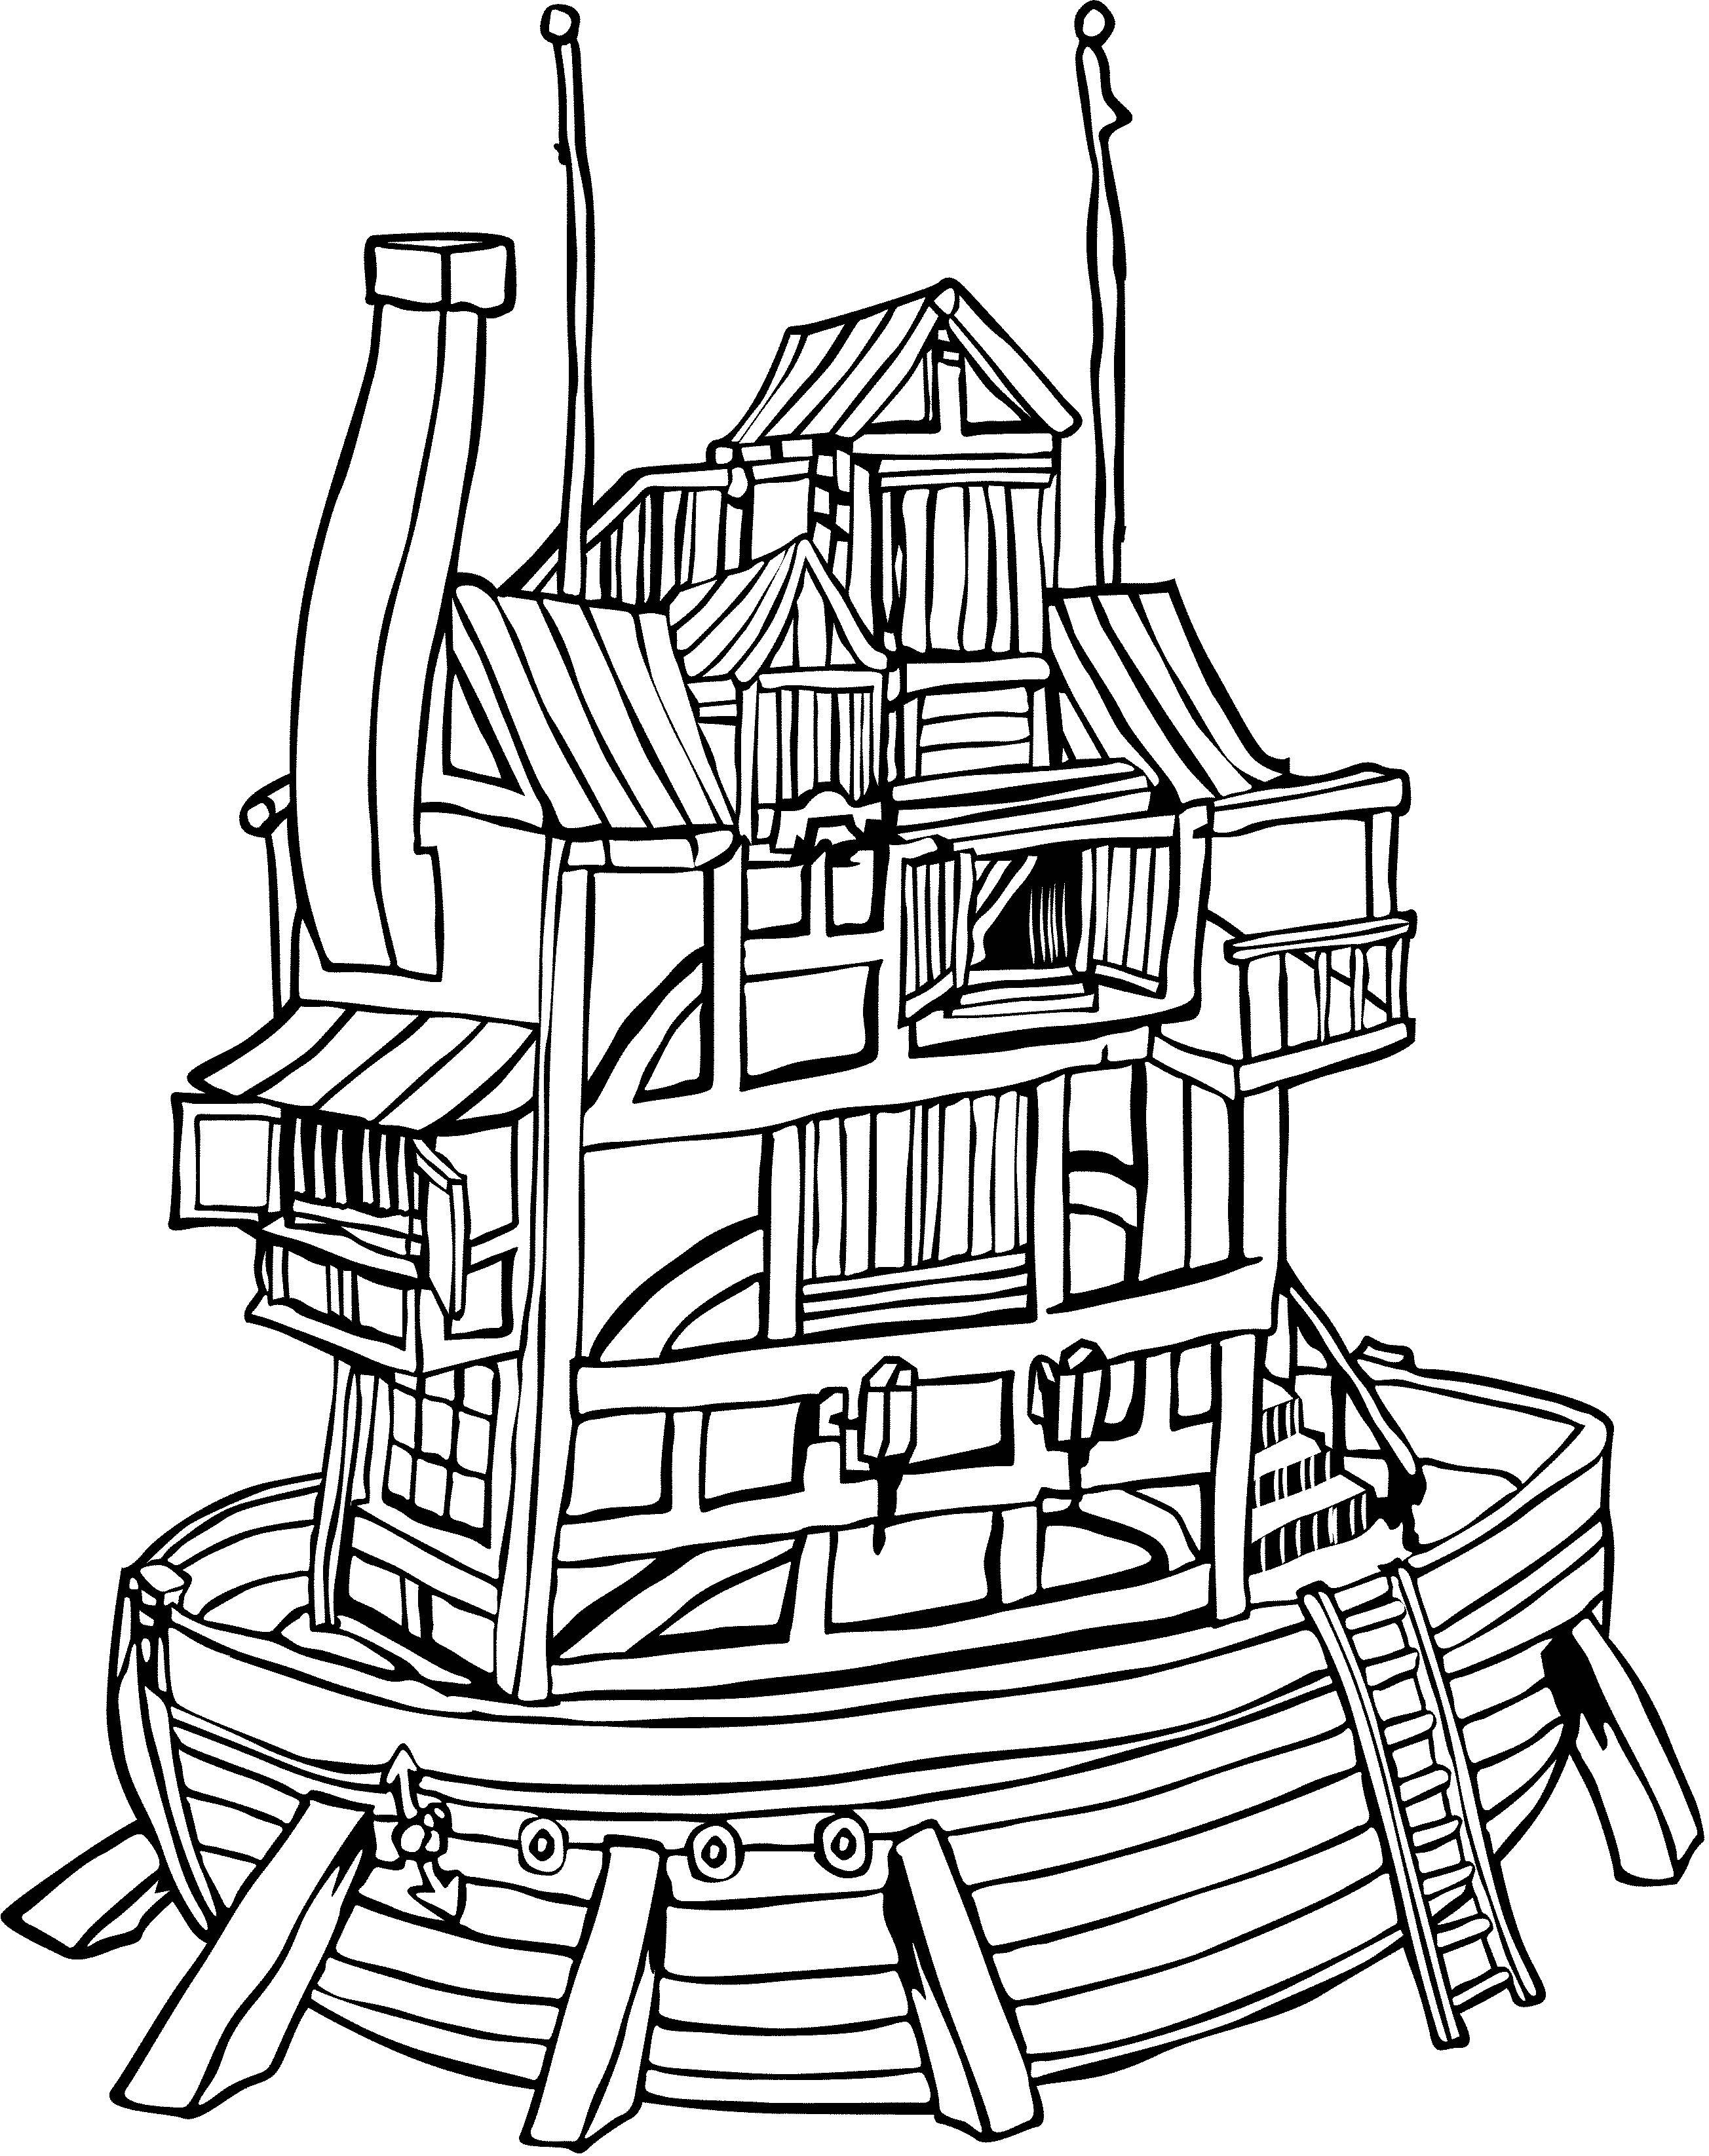 Houseboat black line drawing. Boat clipart house boat